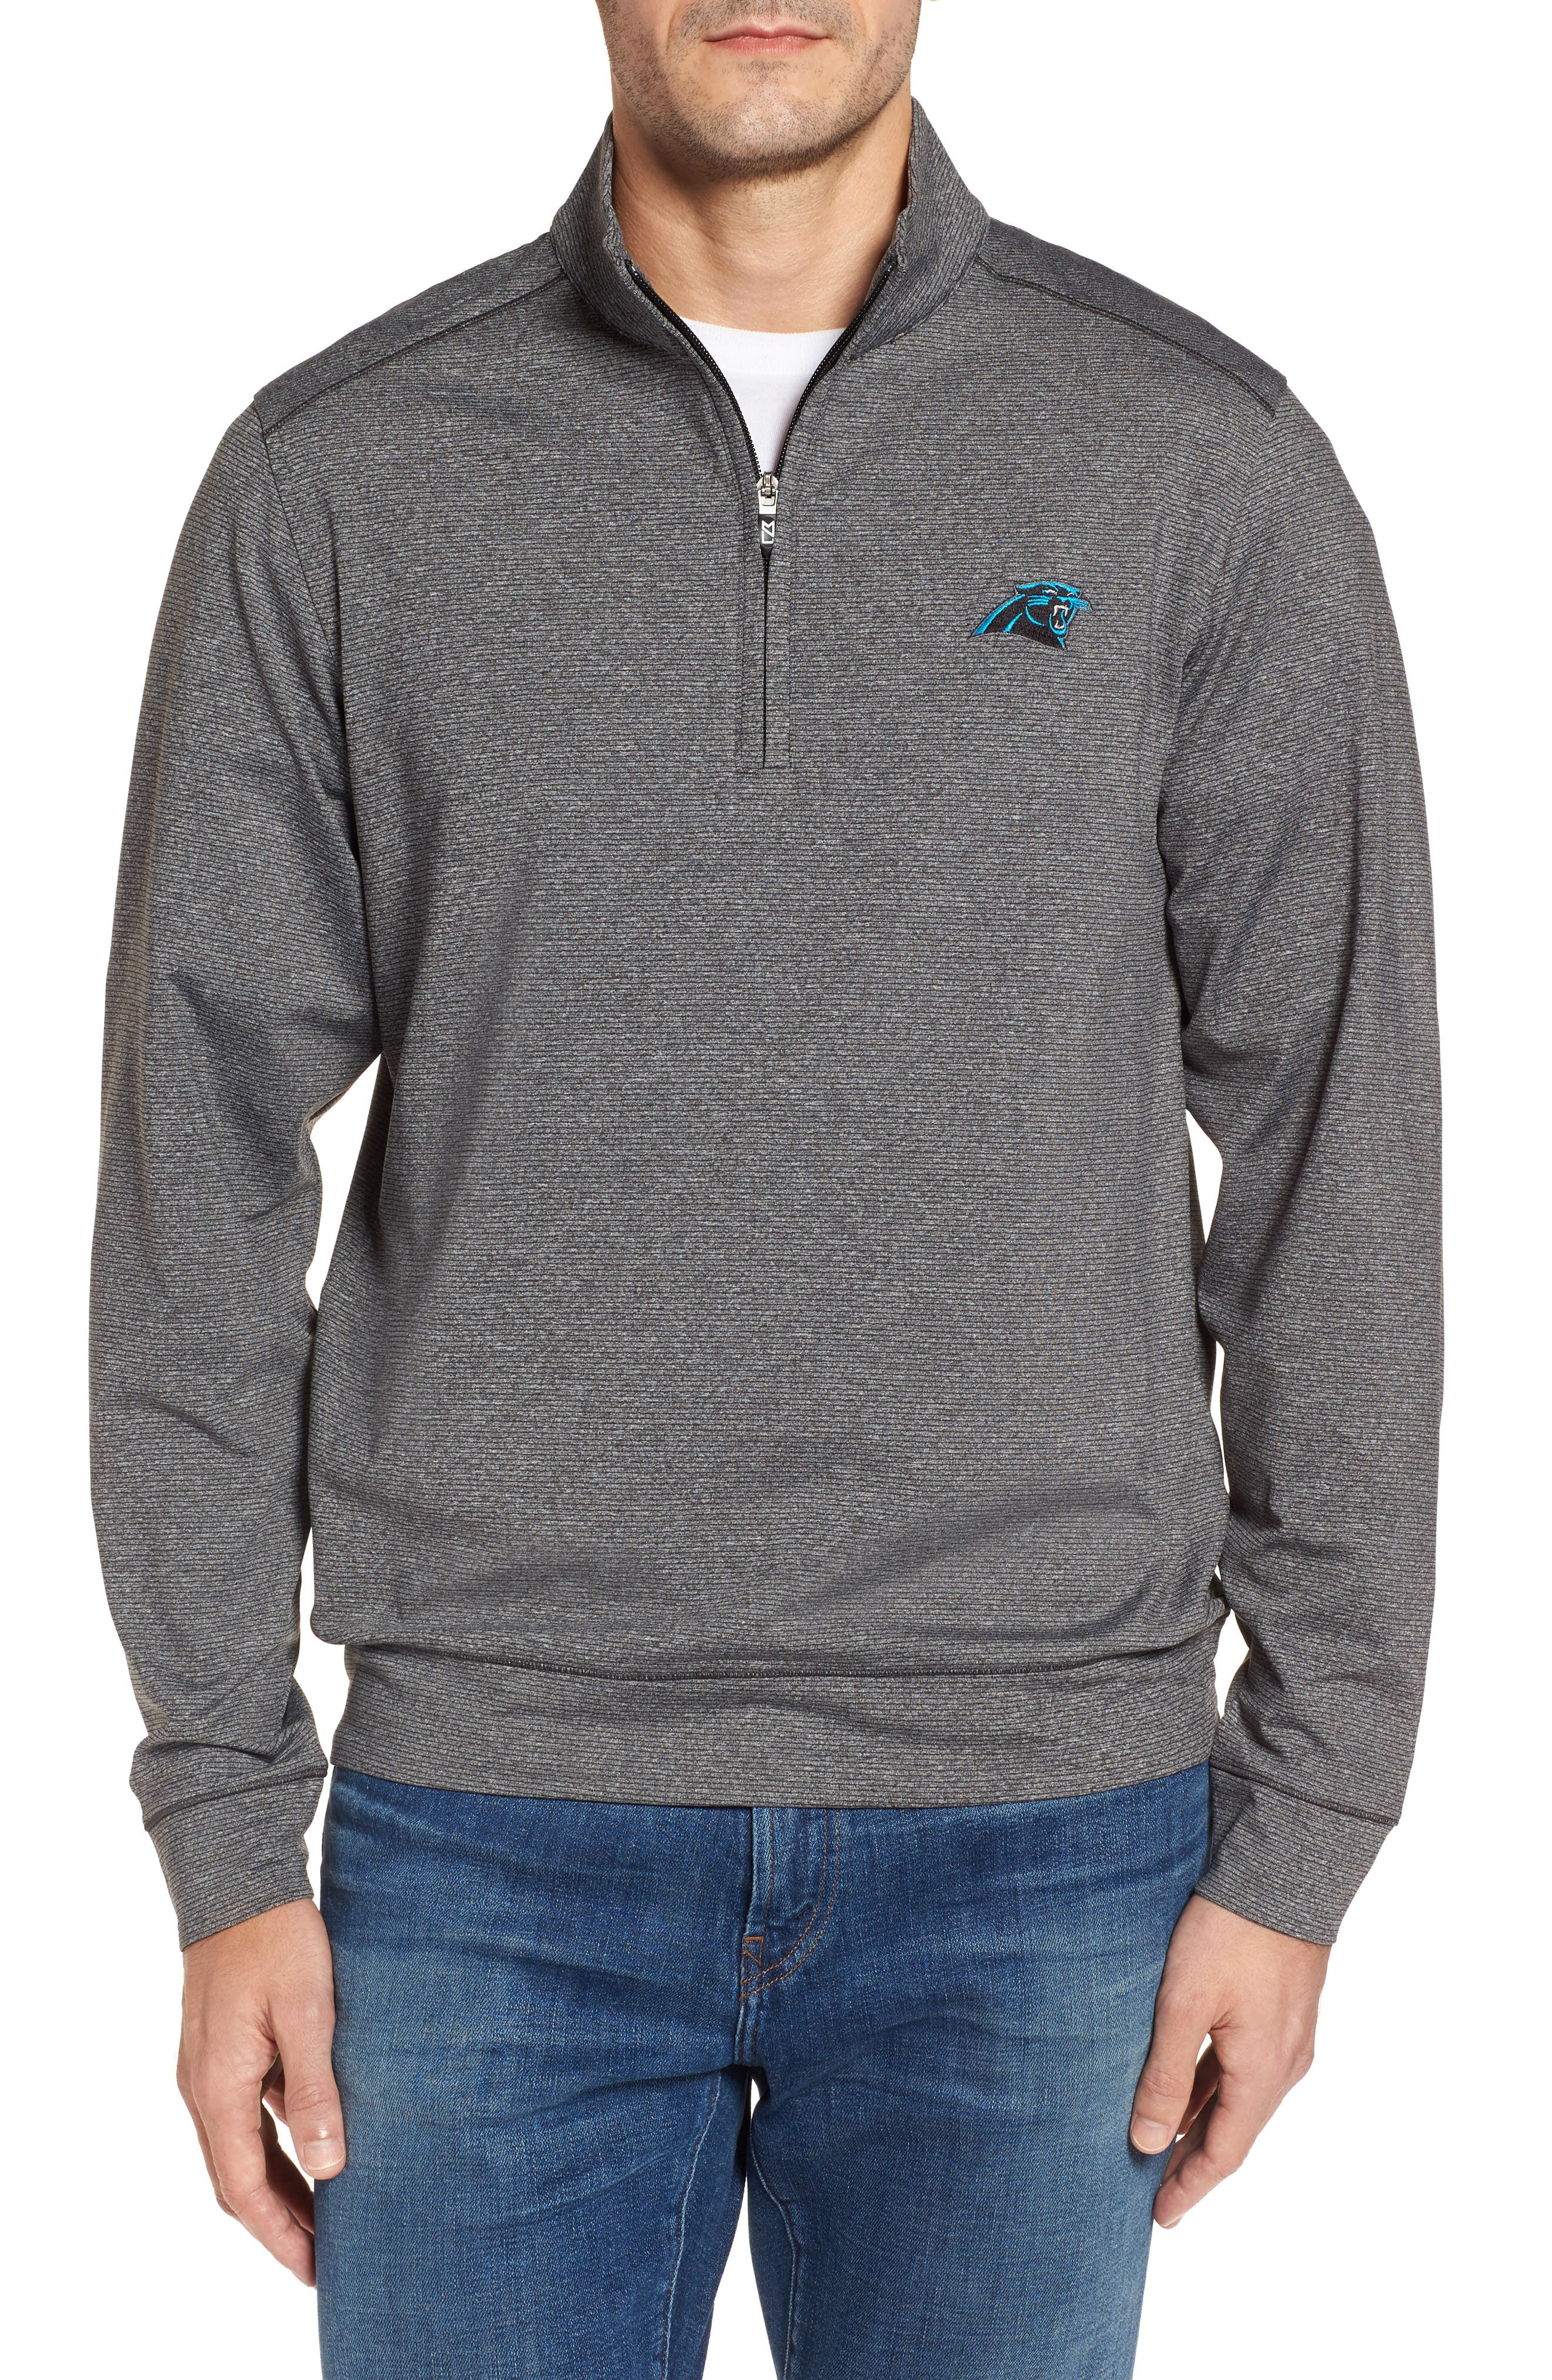 Shoreline - Carolina Panthers Half Zip Pullover,                         Main,                         color, Charcoal Heather